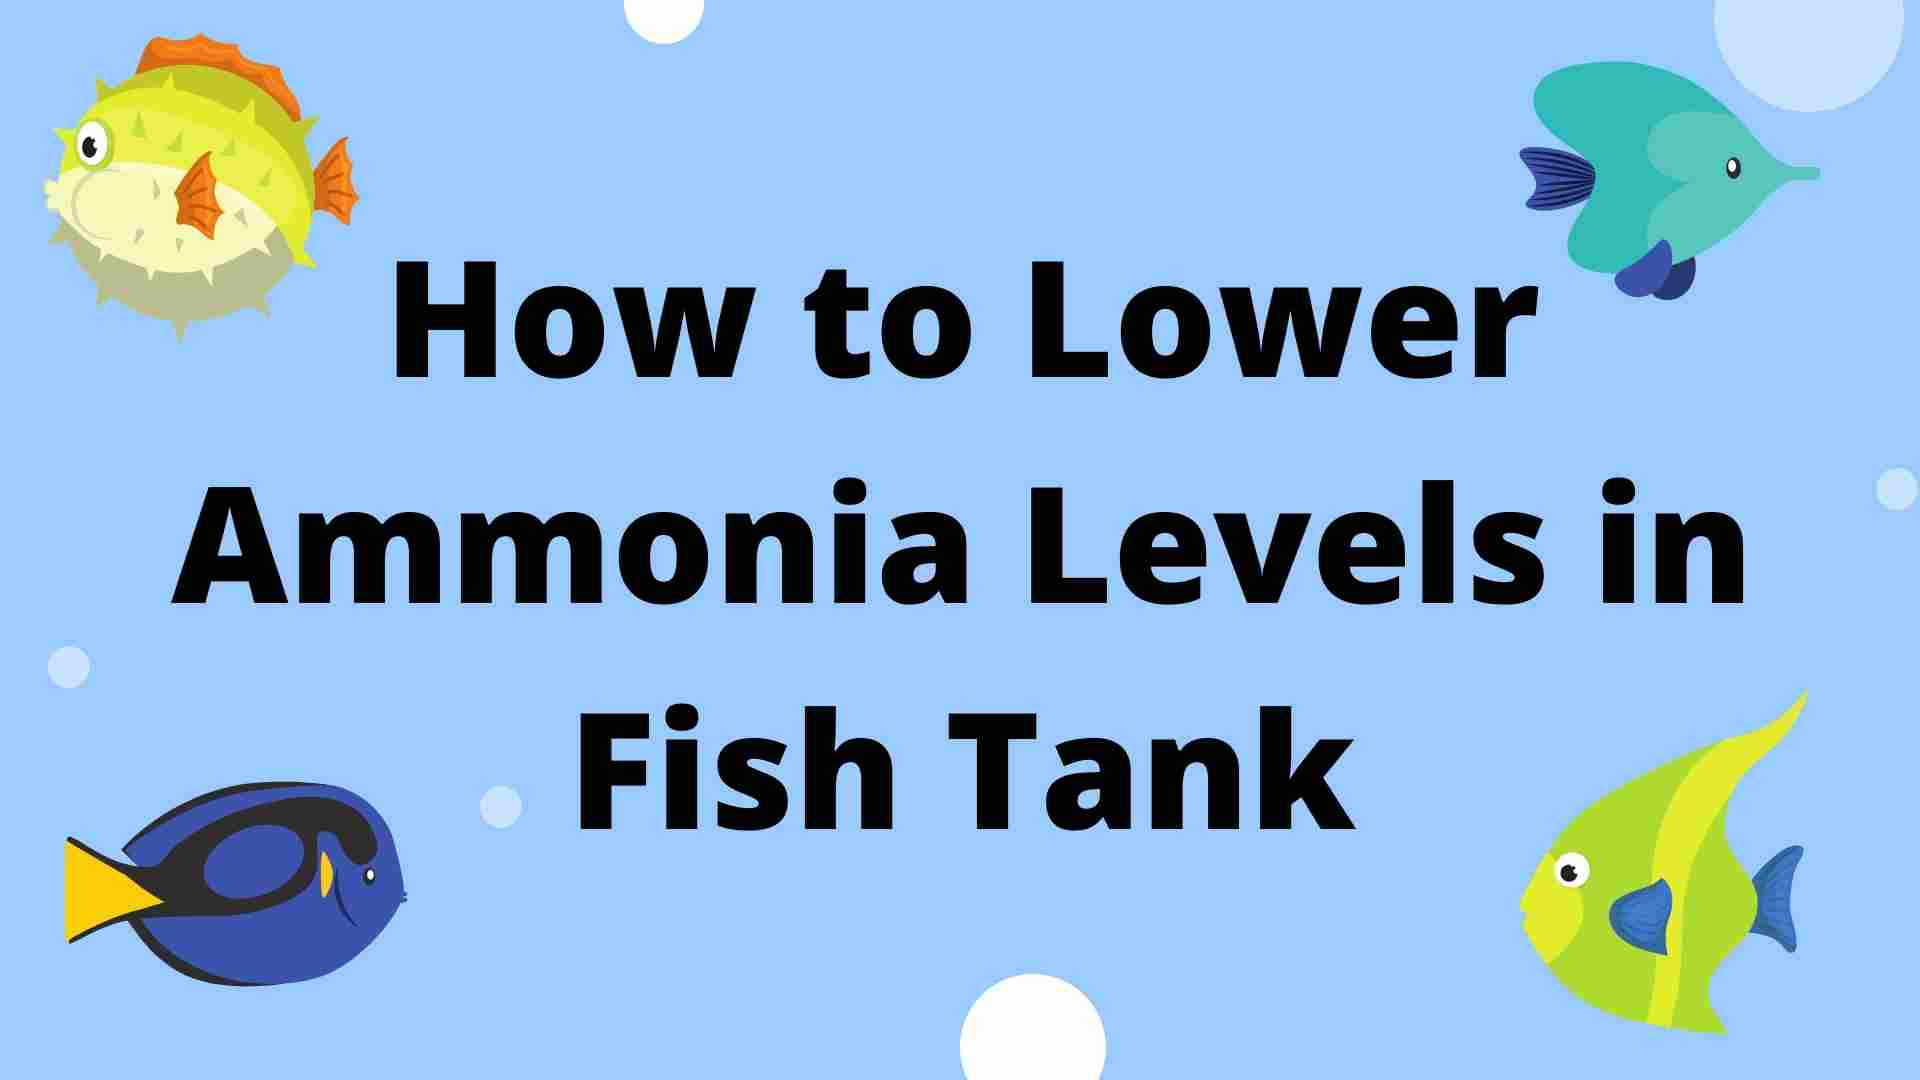 How to Lower Ammonia Levels in Fish Tank